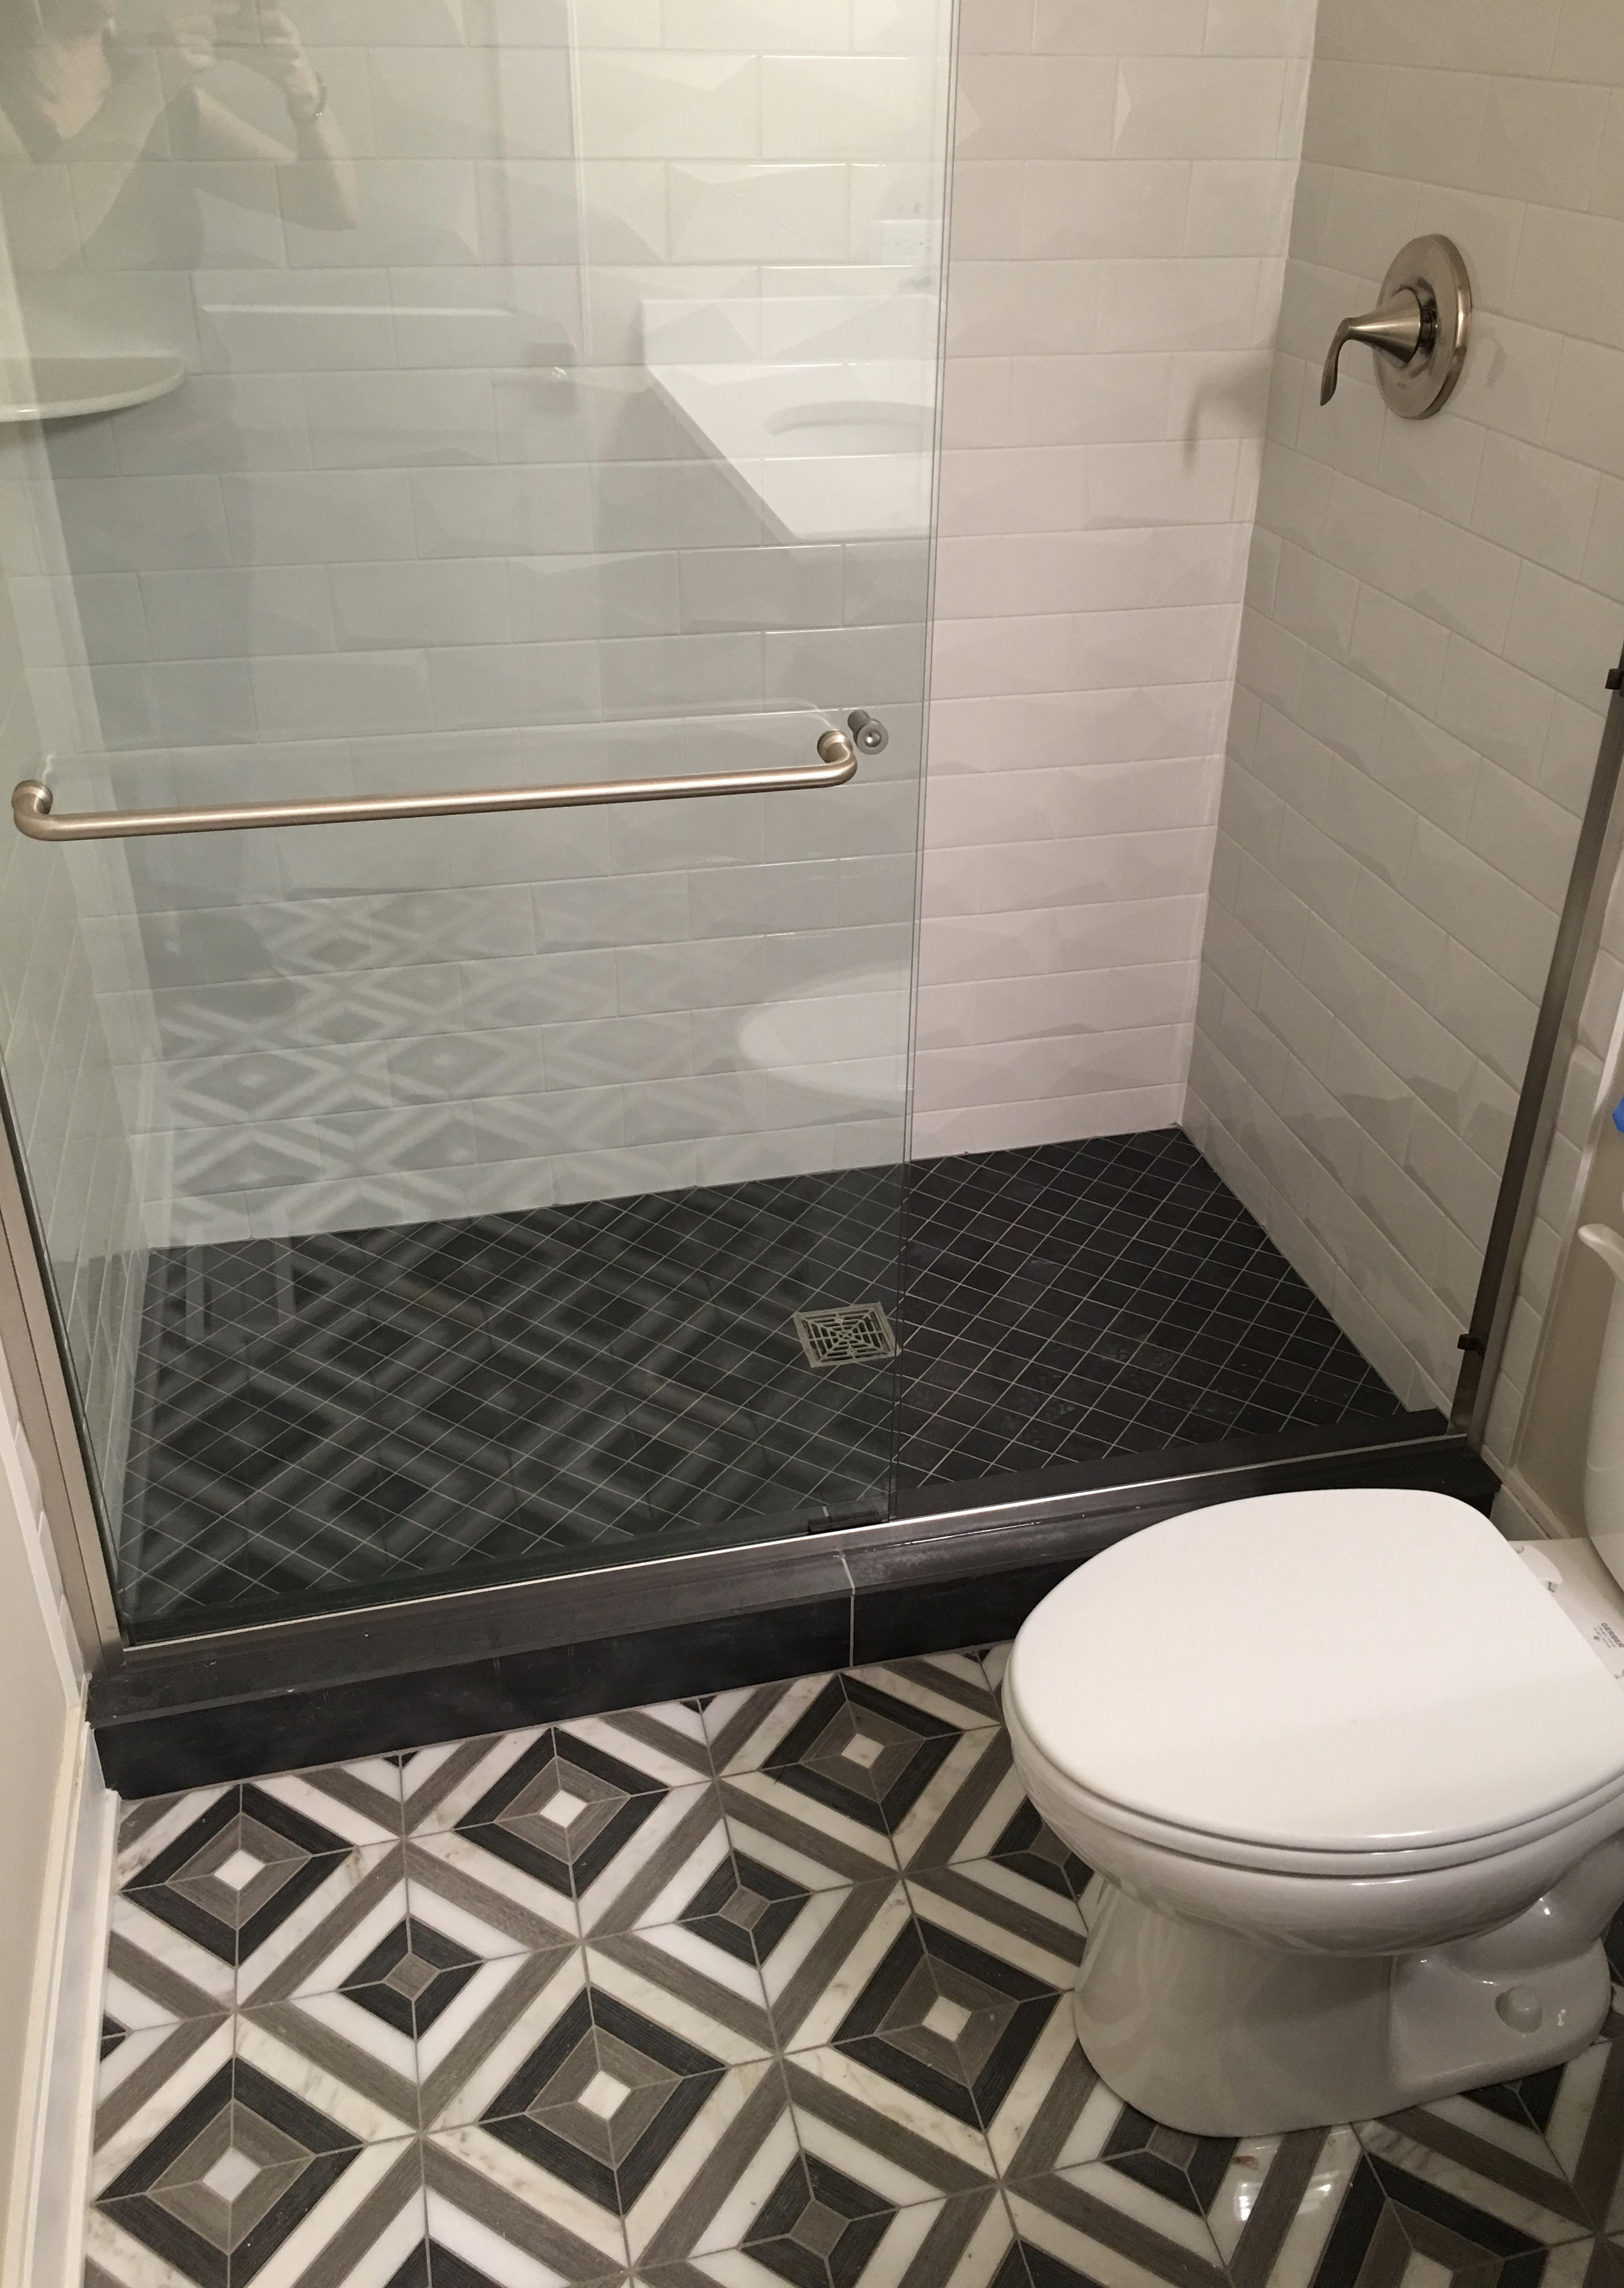 Black White Contrast Continues On Tile Tuesday With Montauk Dark Grey Stone Mosaic Floor Tile Diamon Grey Stone Mosaic Shower Wall Tile Grey Mosaic Tiles